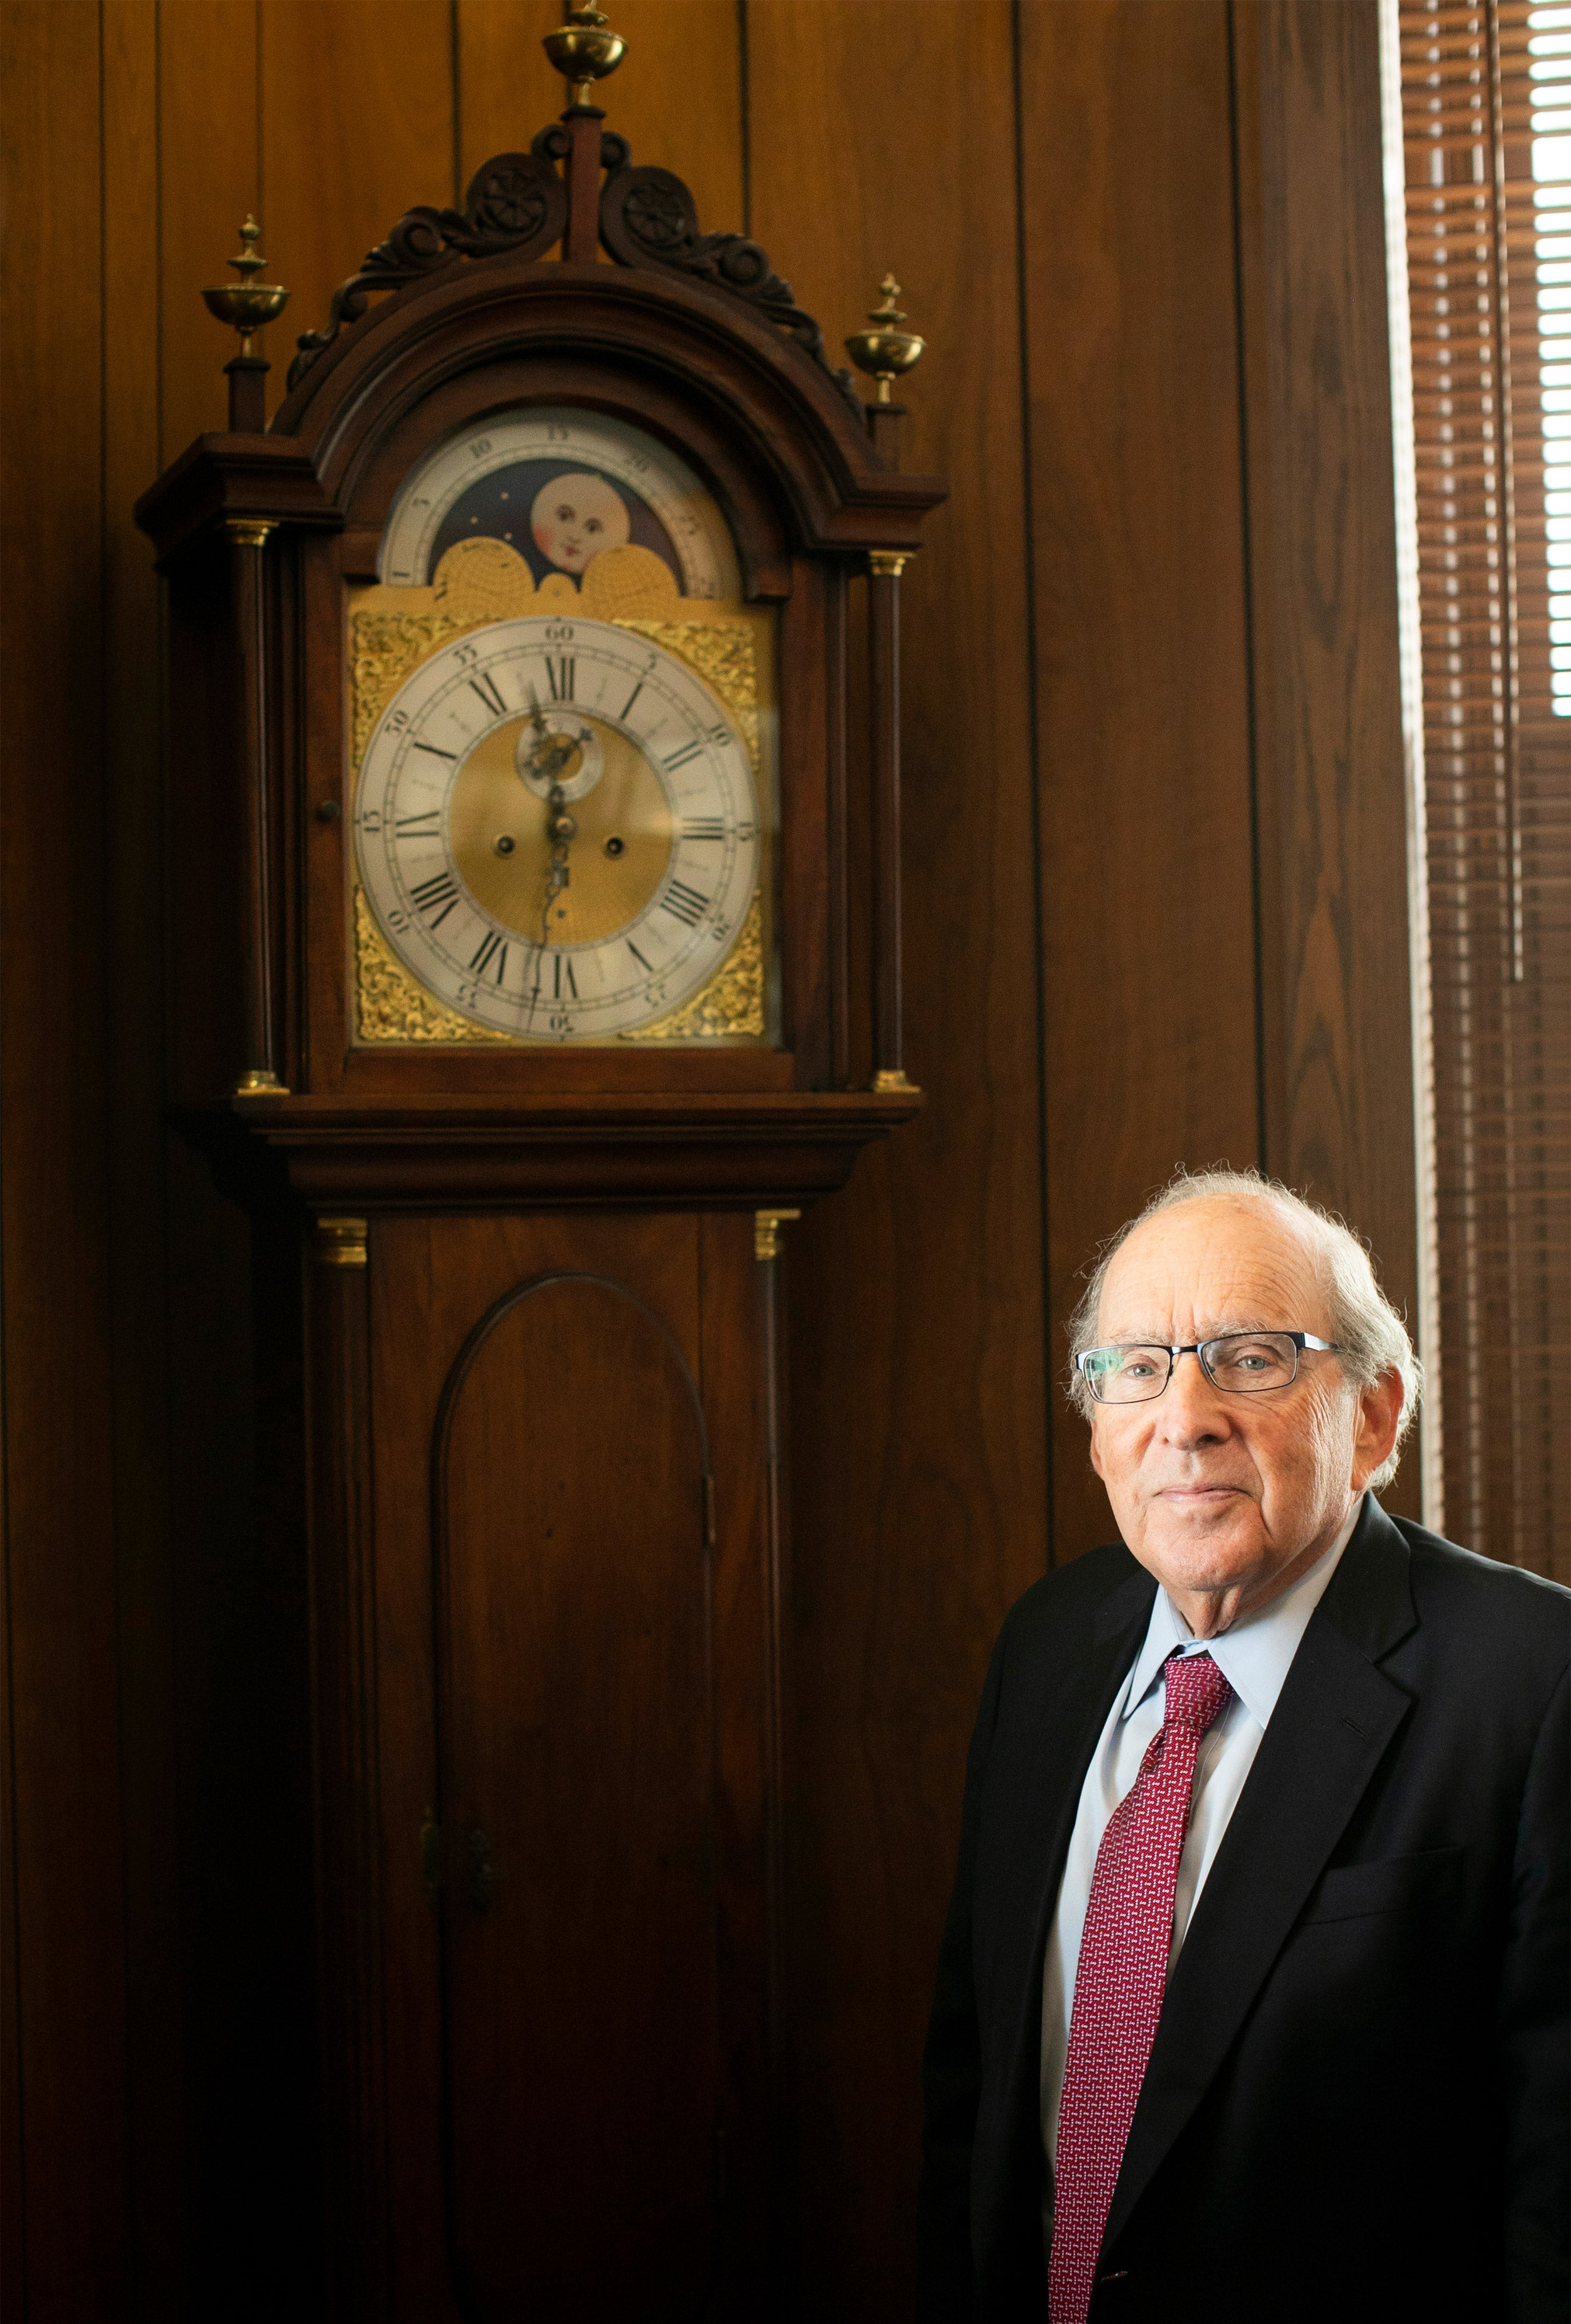 Dean Bruce Donoff standing in front of an antique grandfather clock.